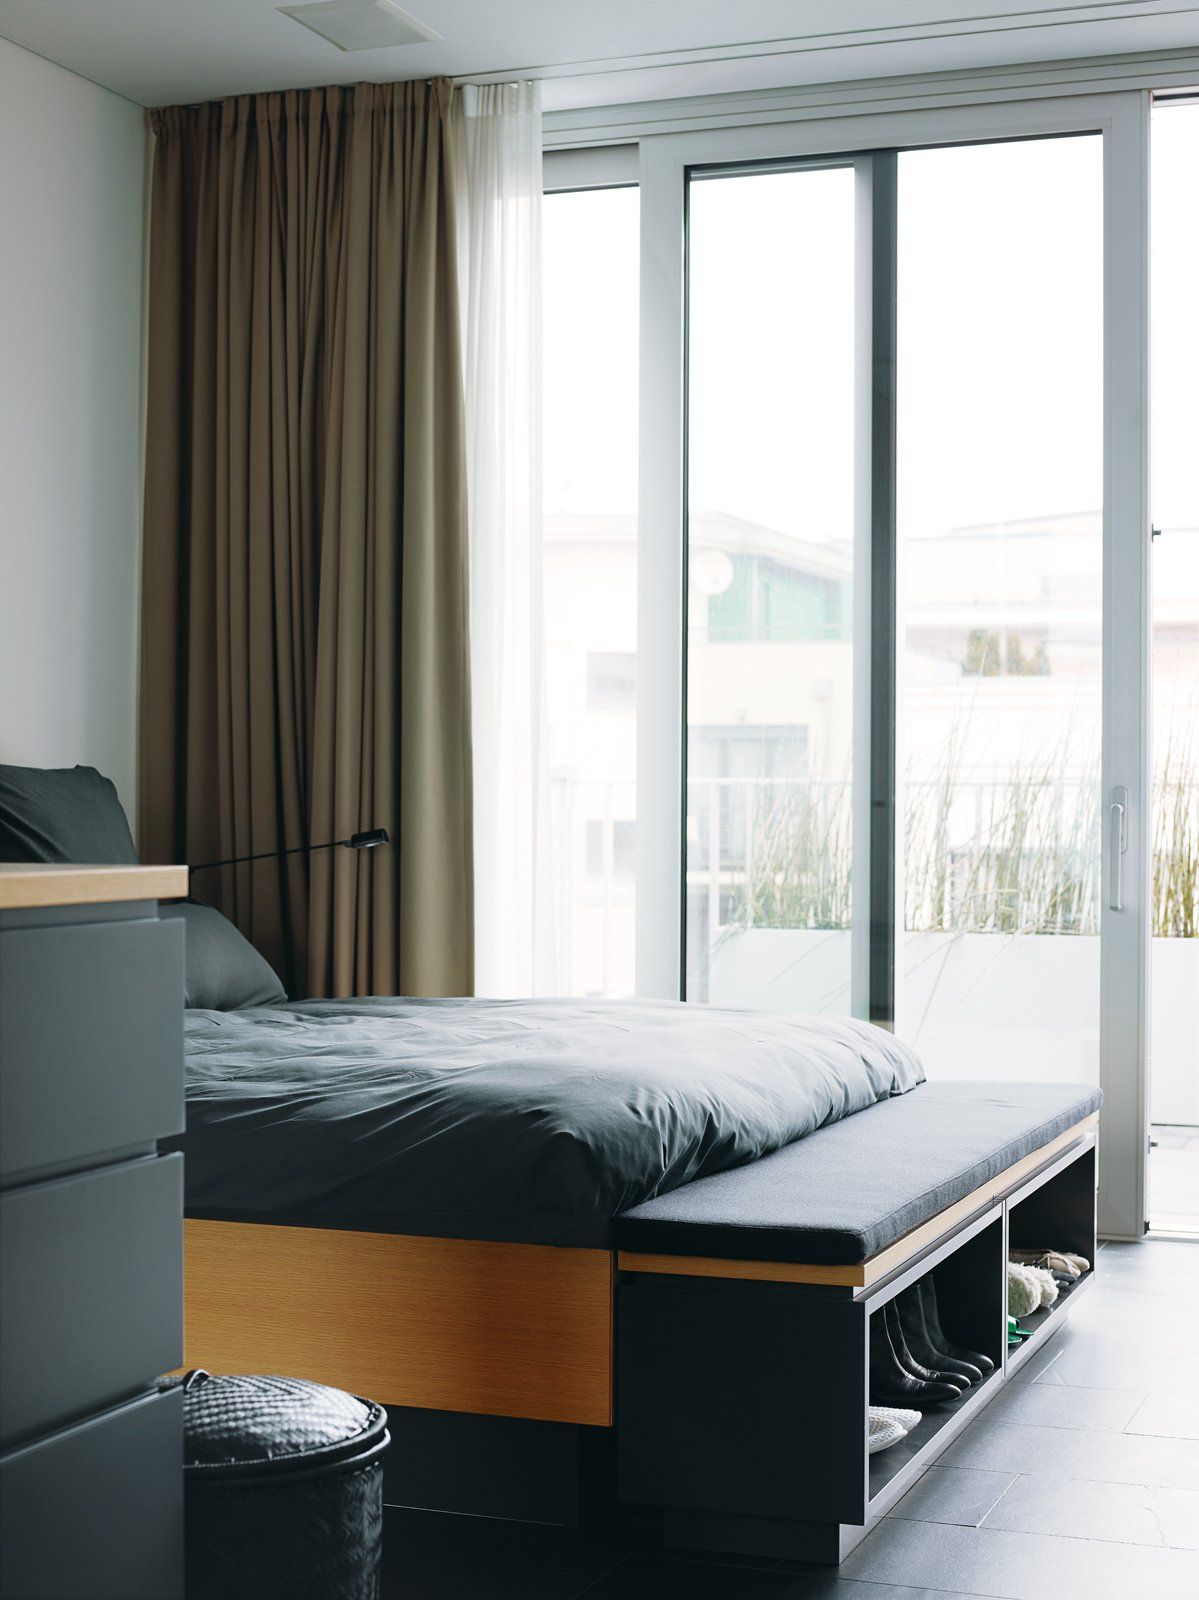 Bedroom and Bed The interior is bright and charming, cool but not cold. Each floor is open, with an unencumbered view from the glass facade in front to the glass doors in back, which makes the rooms feel much larger than they are.  Photo 15 of 16 in A Rational Approach